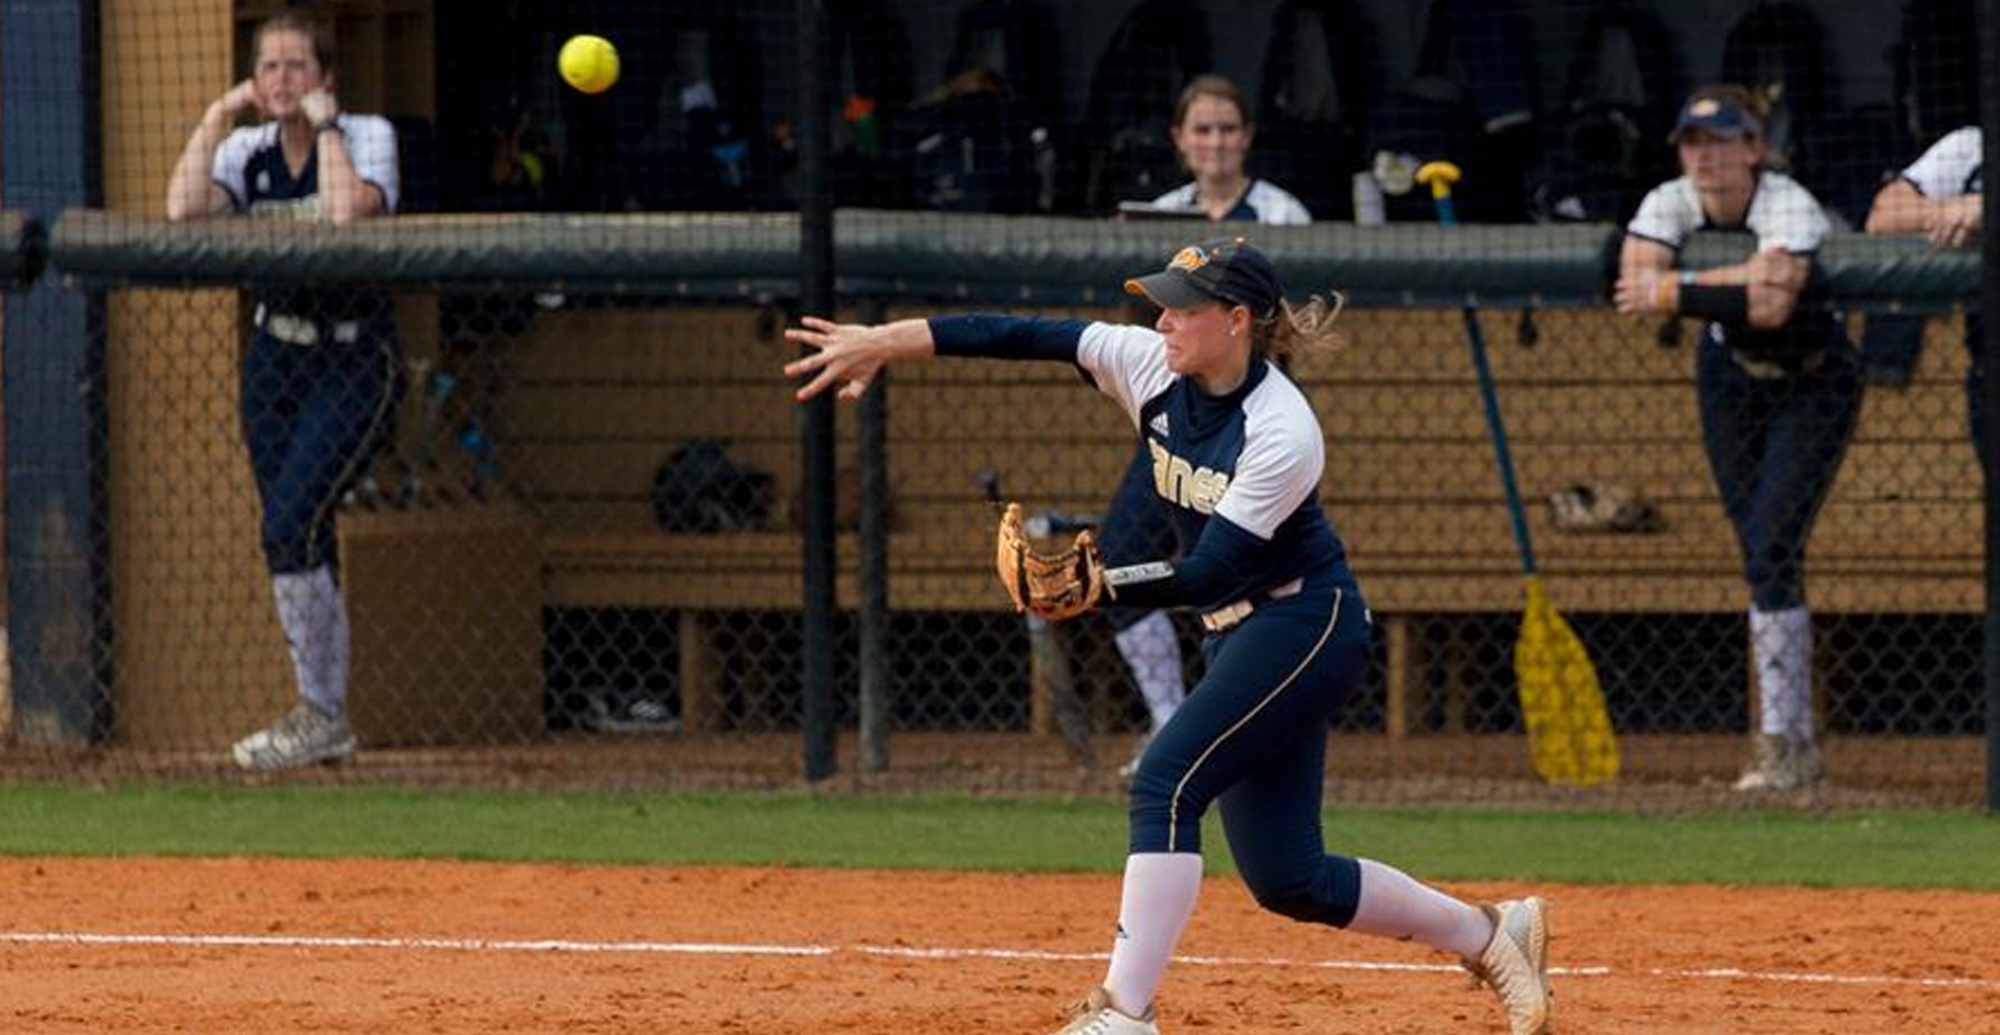 Lady Canes Drop Battle To No. 3 Nighthawks